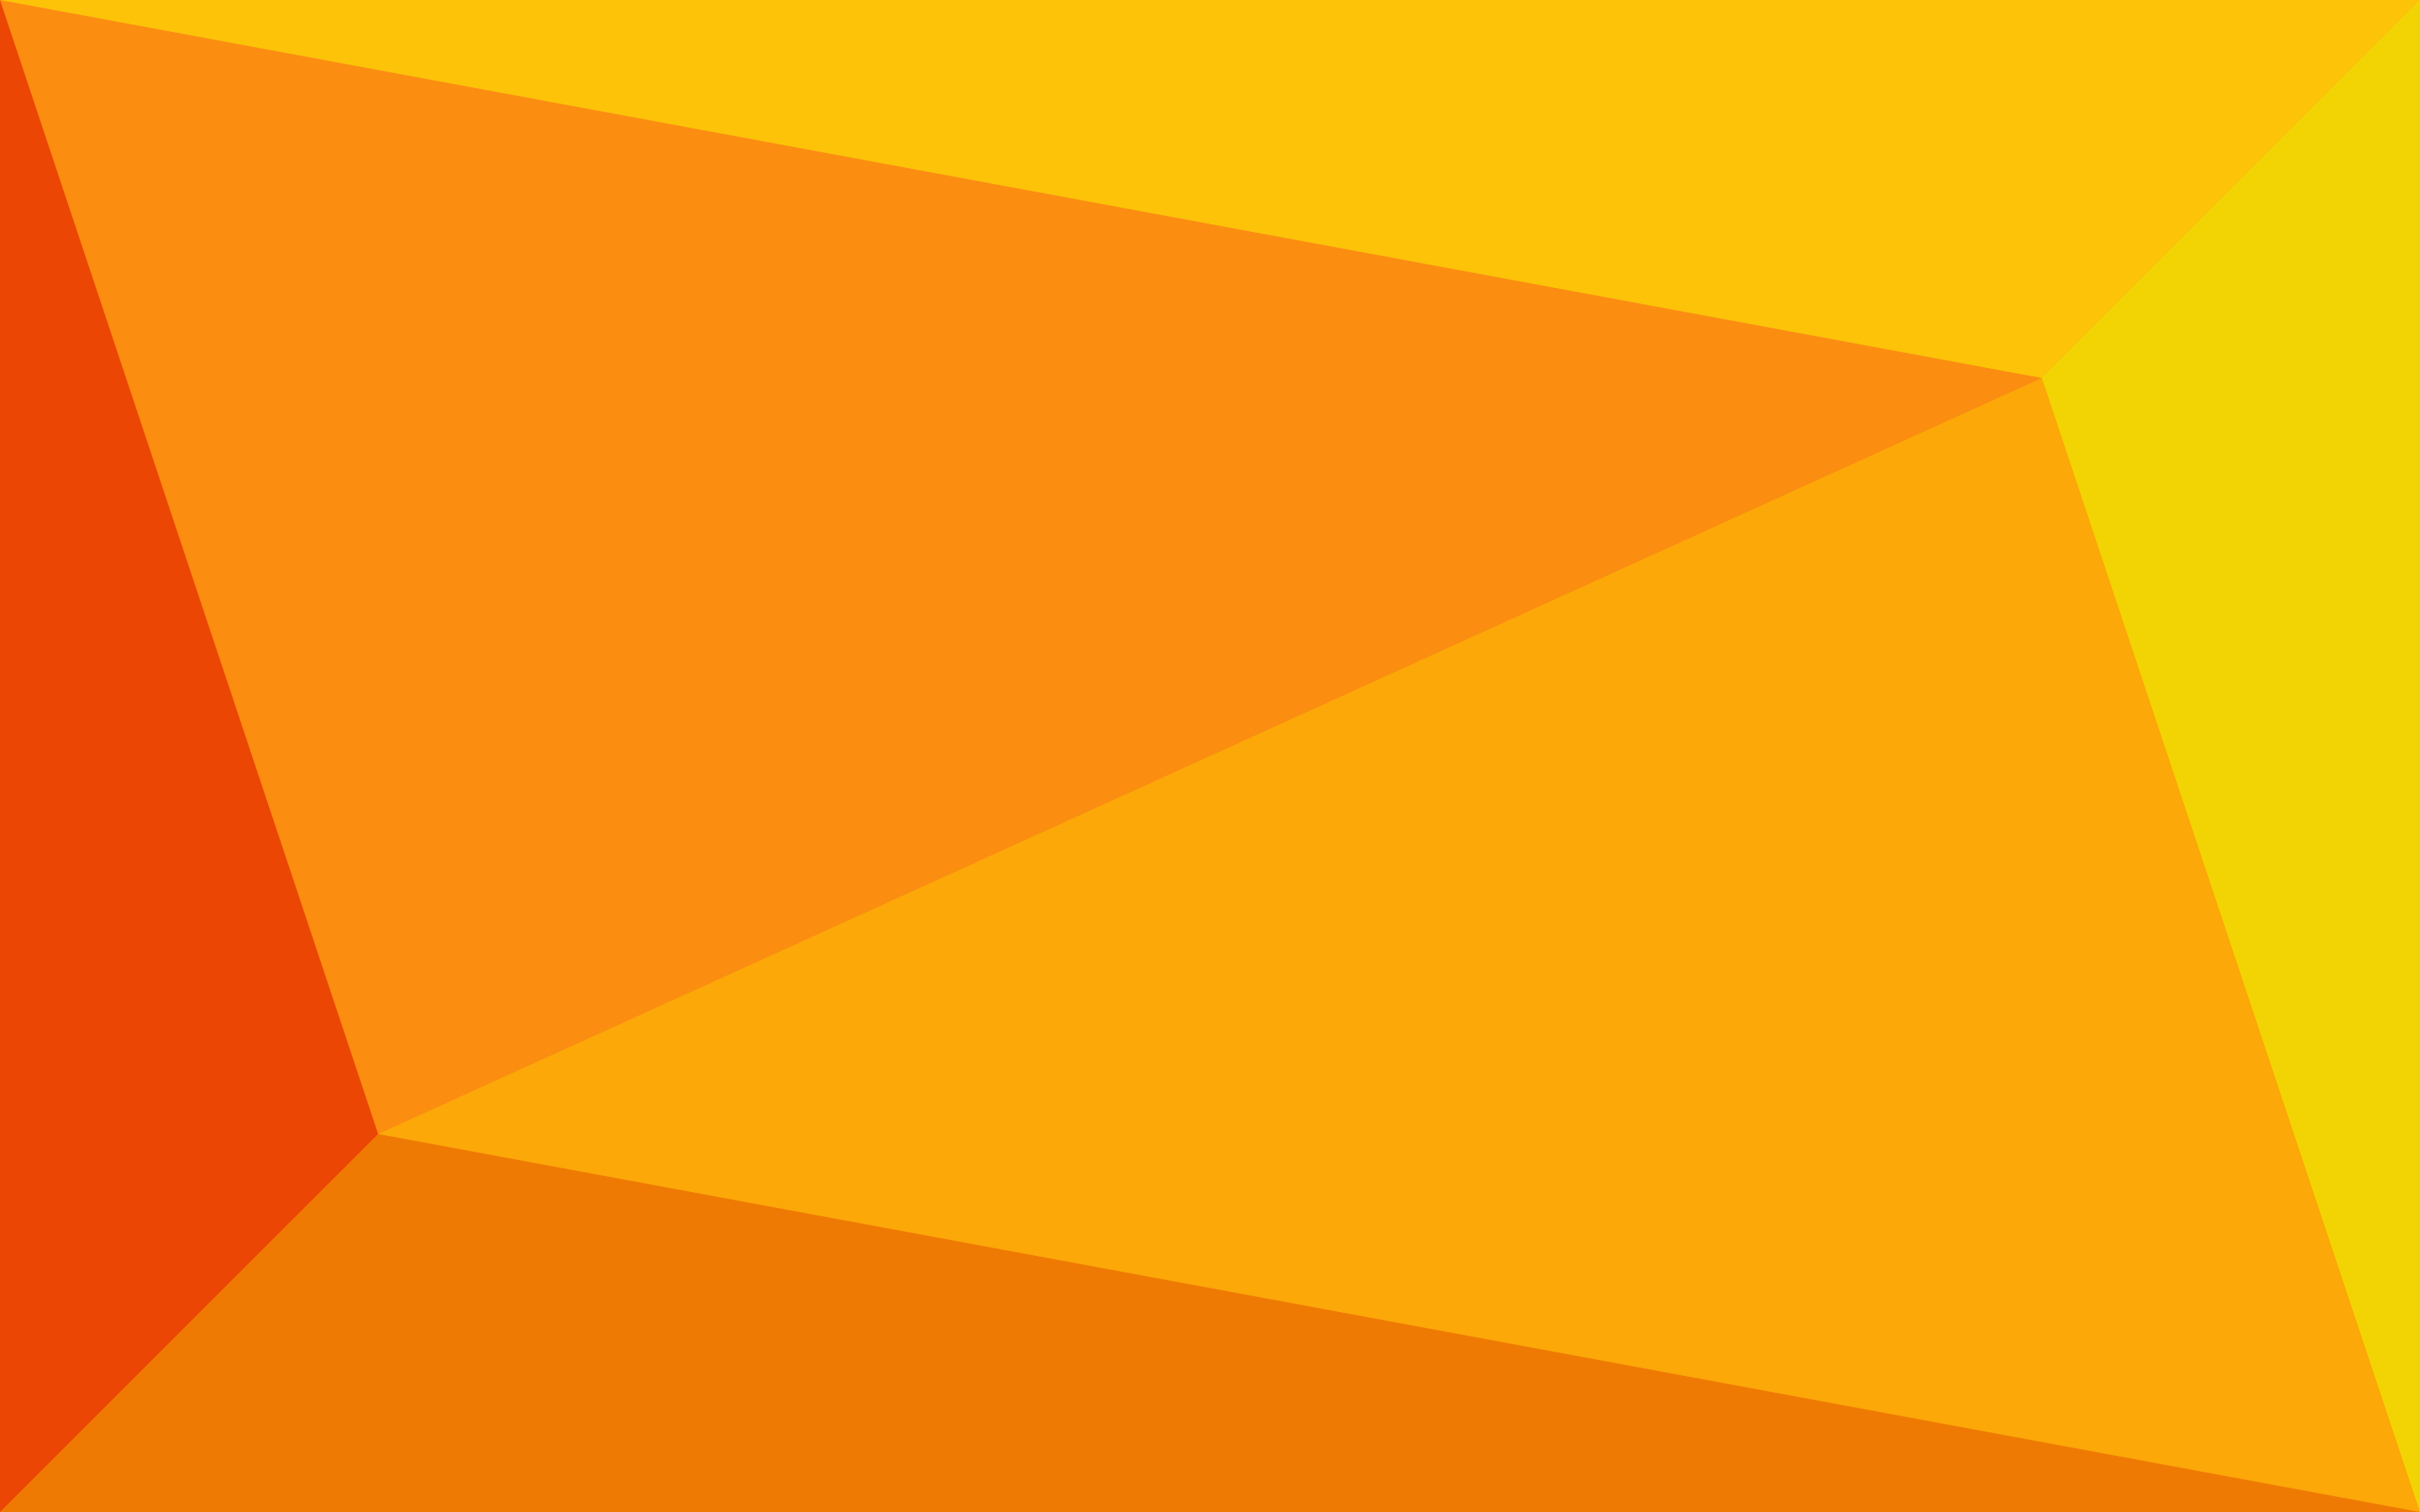 2880 x 1800 png 16kBTriangle